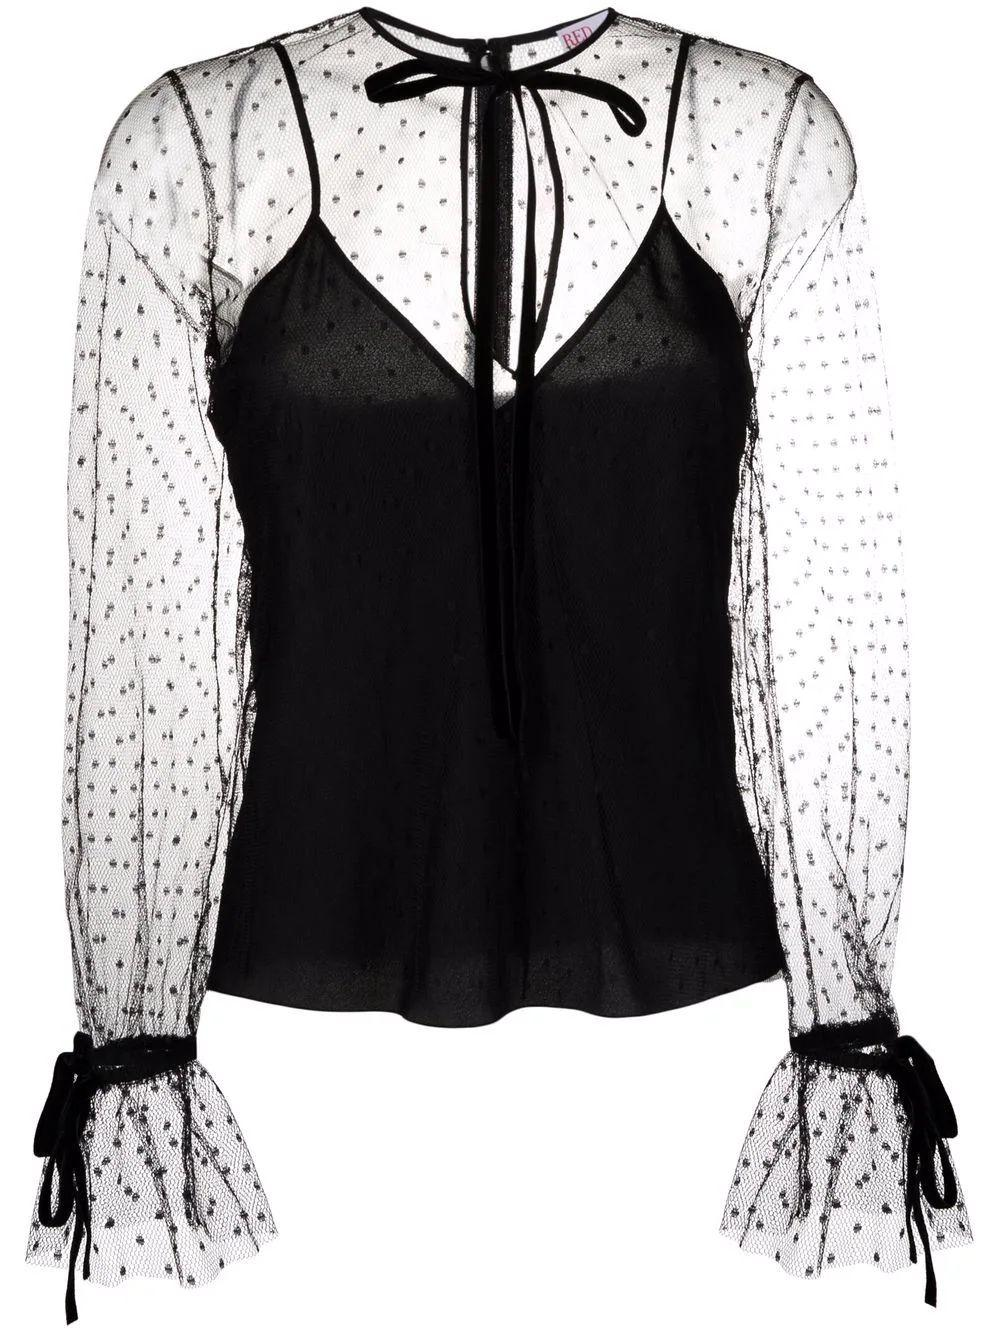 Sheer Blouse With Tie Details Item # WR3ABF801GK